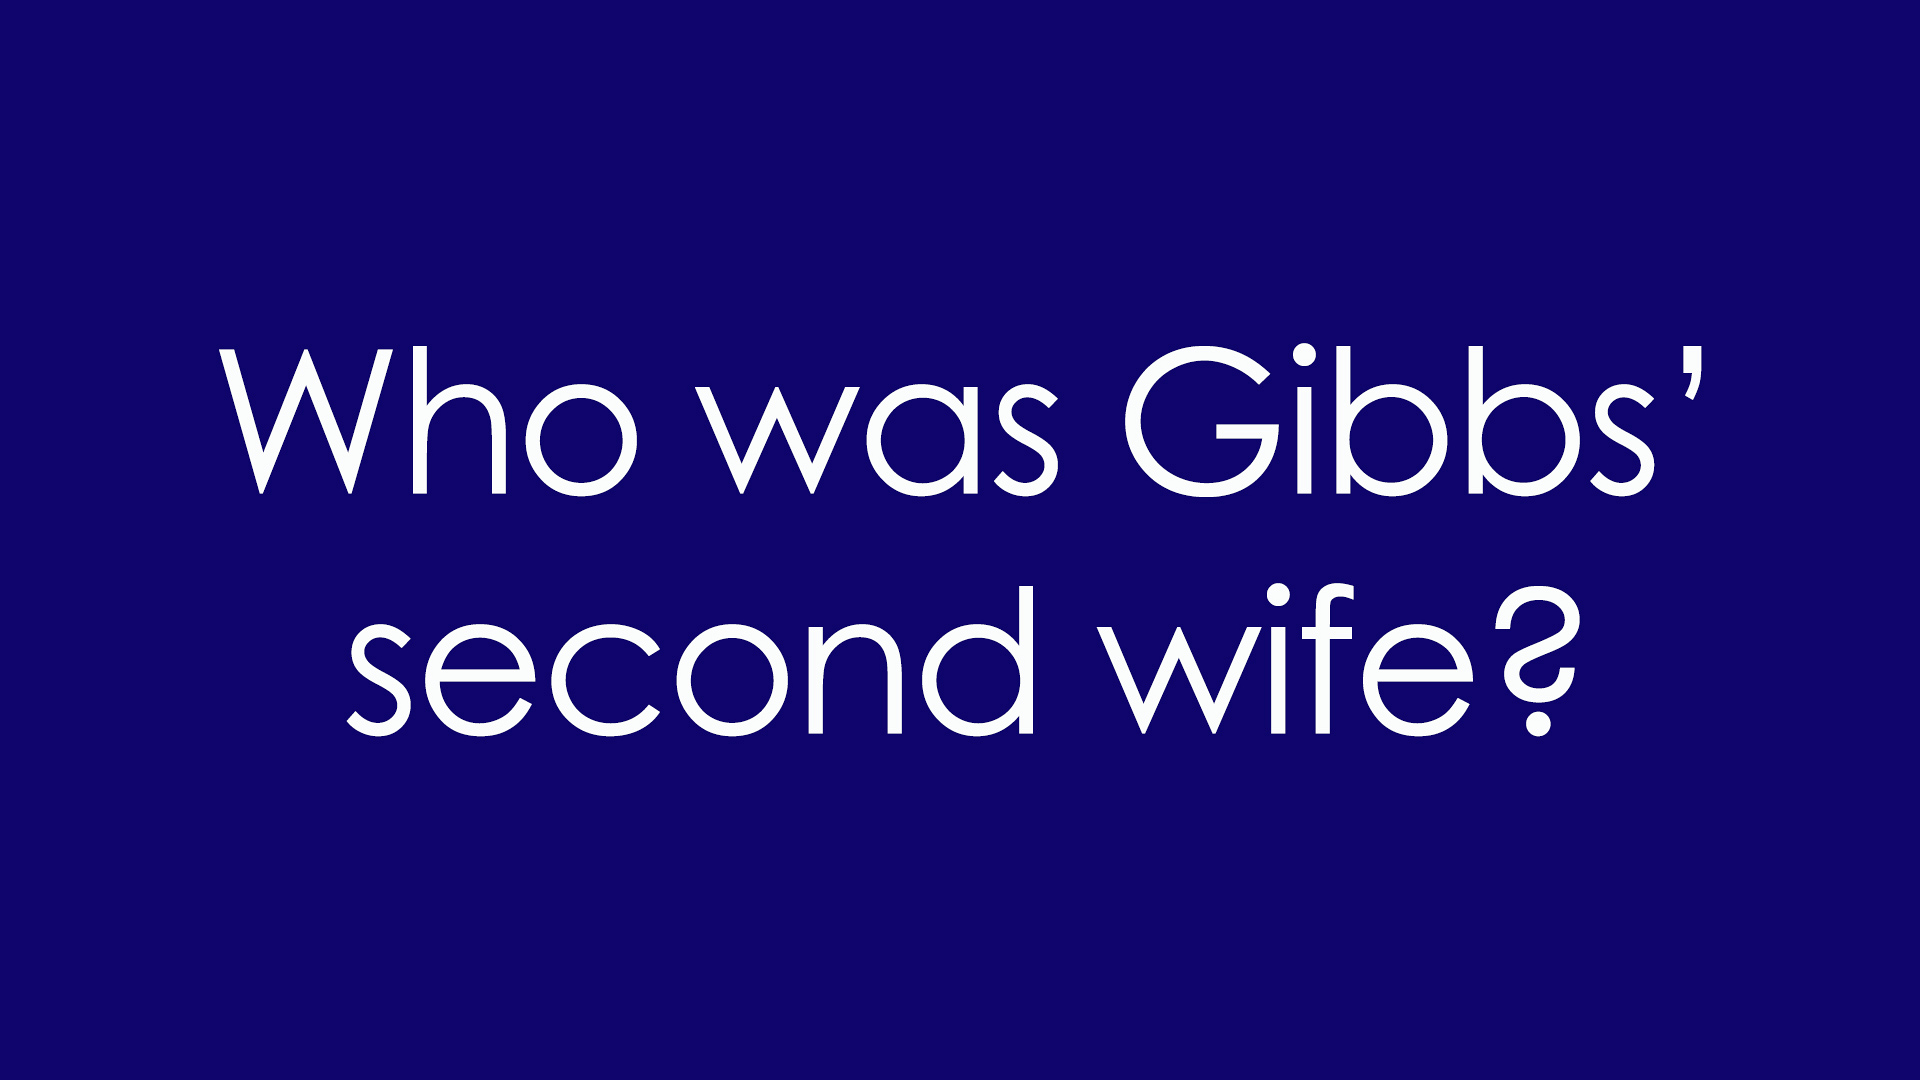 4. Who was Gibbs' second wife?